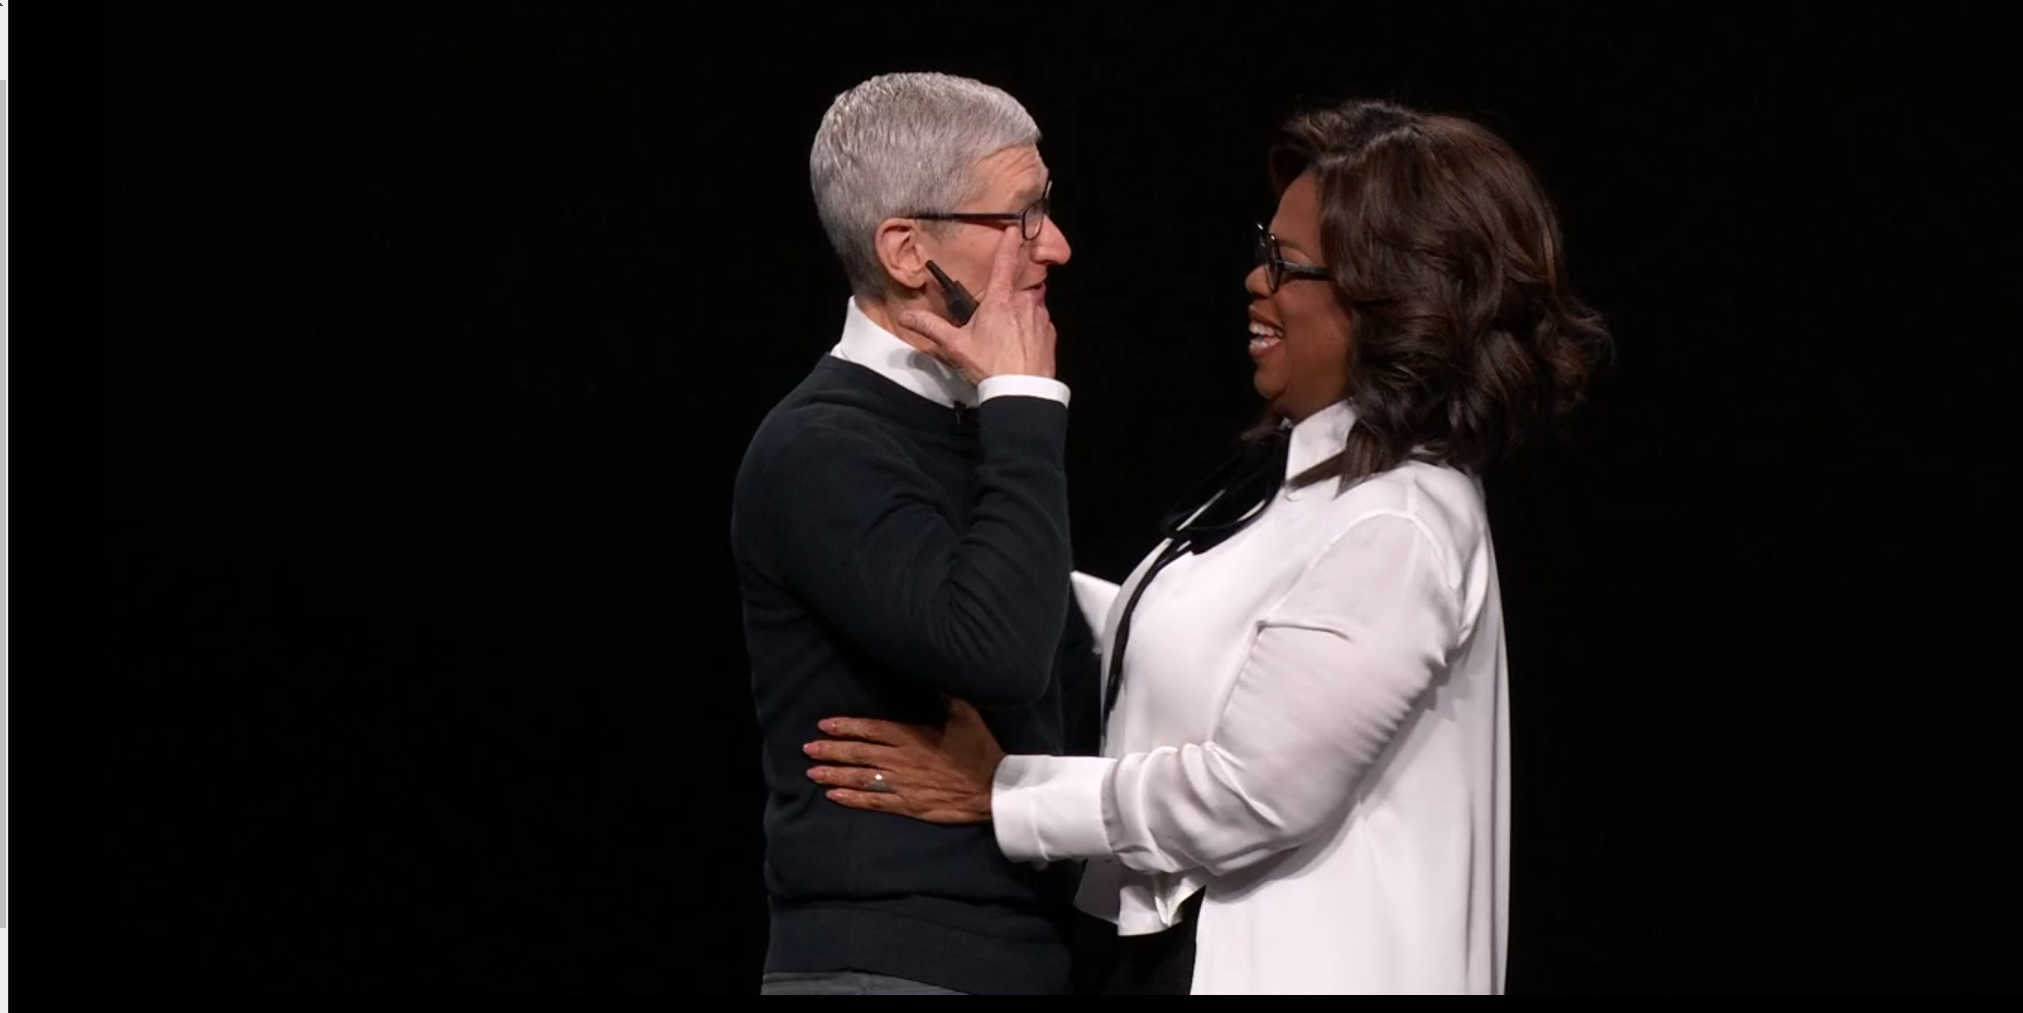 Tim Cook and Oprah embrace on stage.